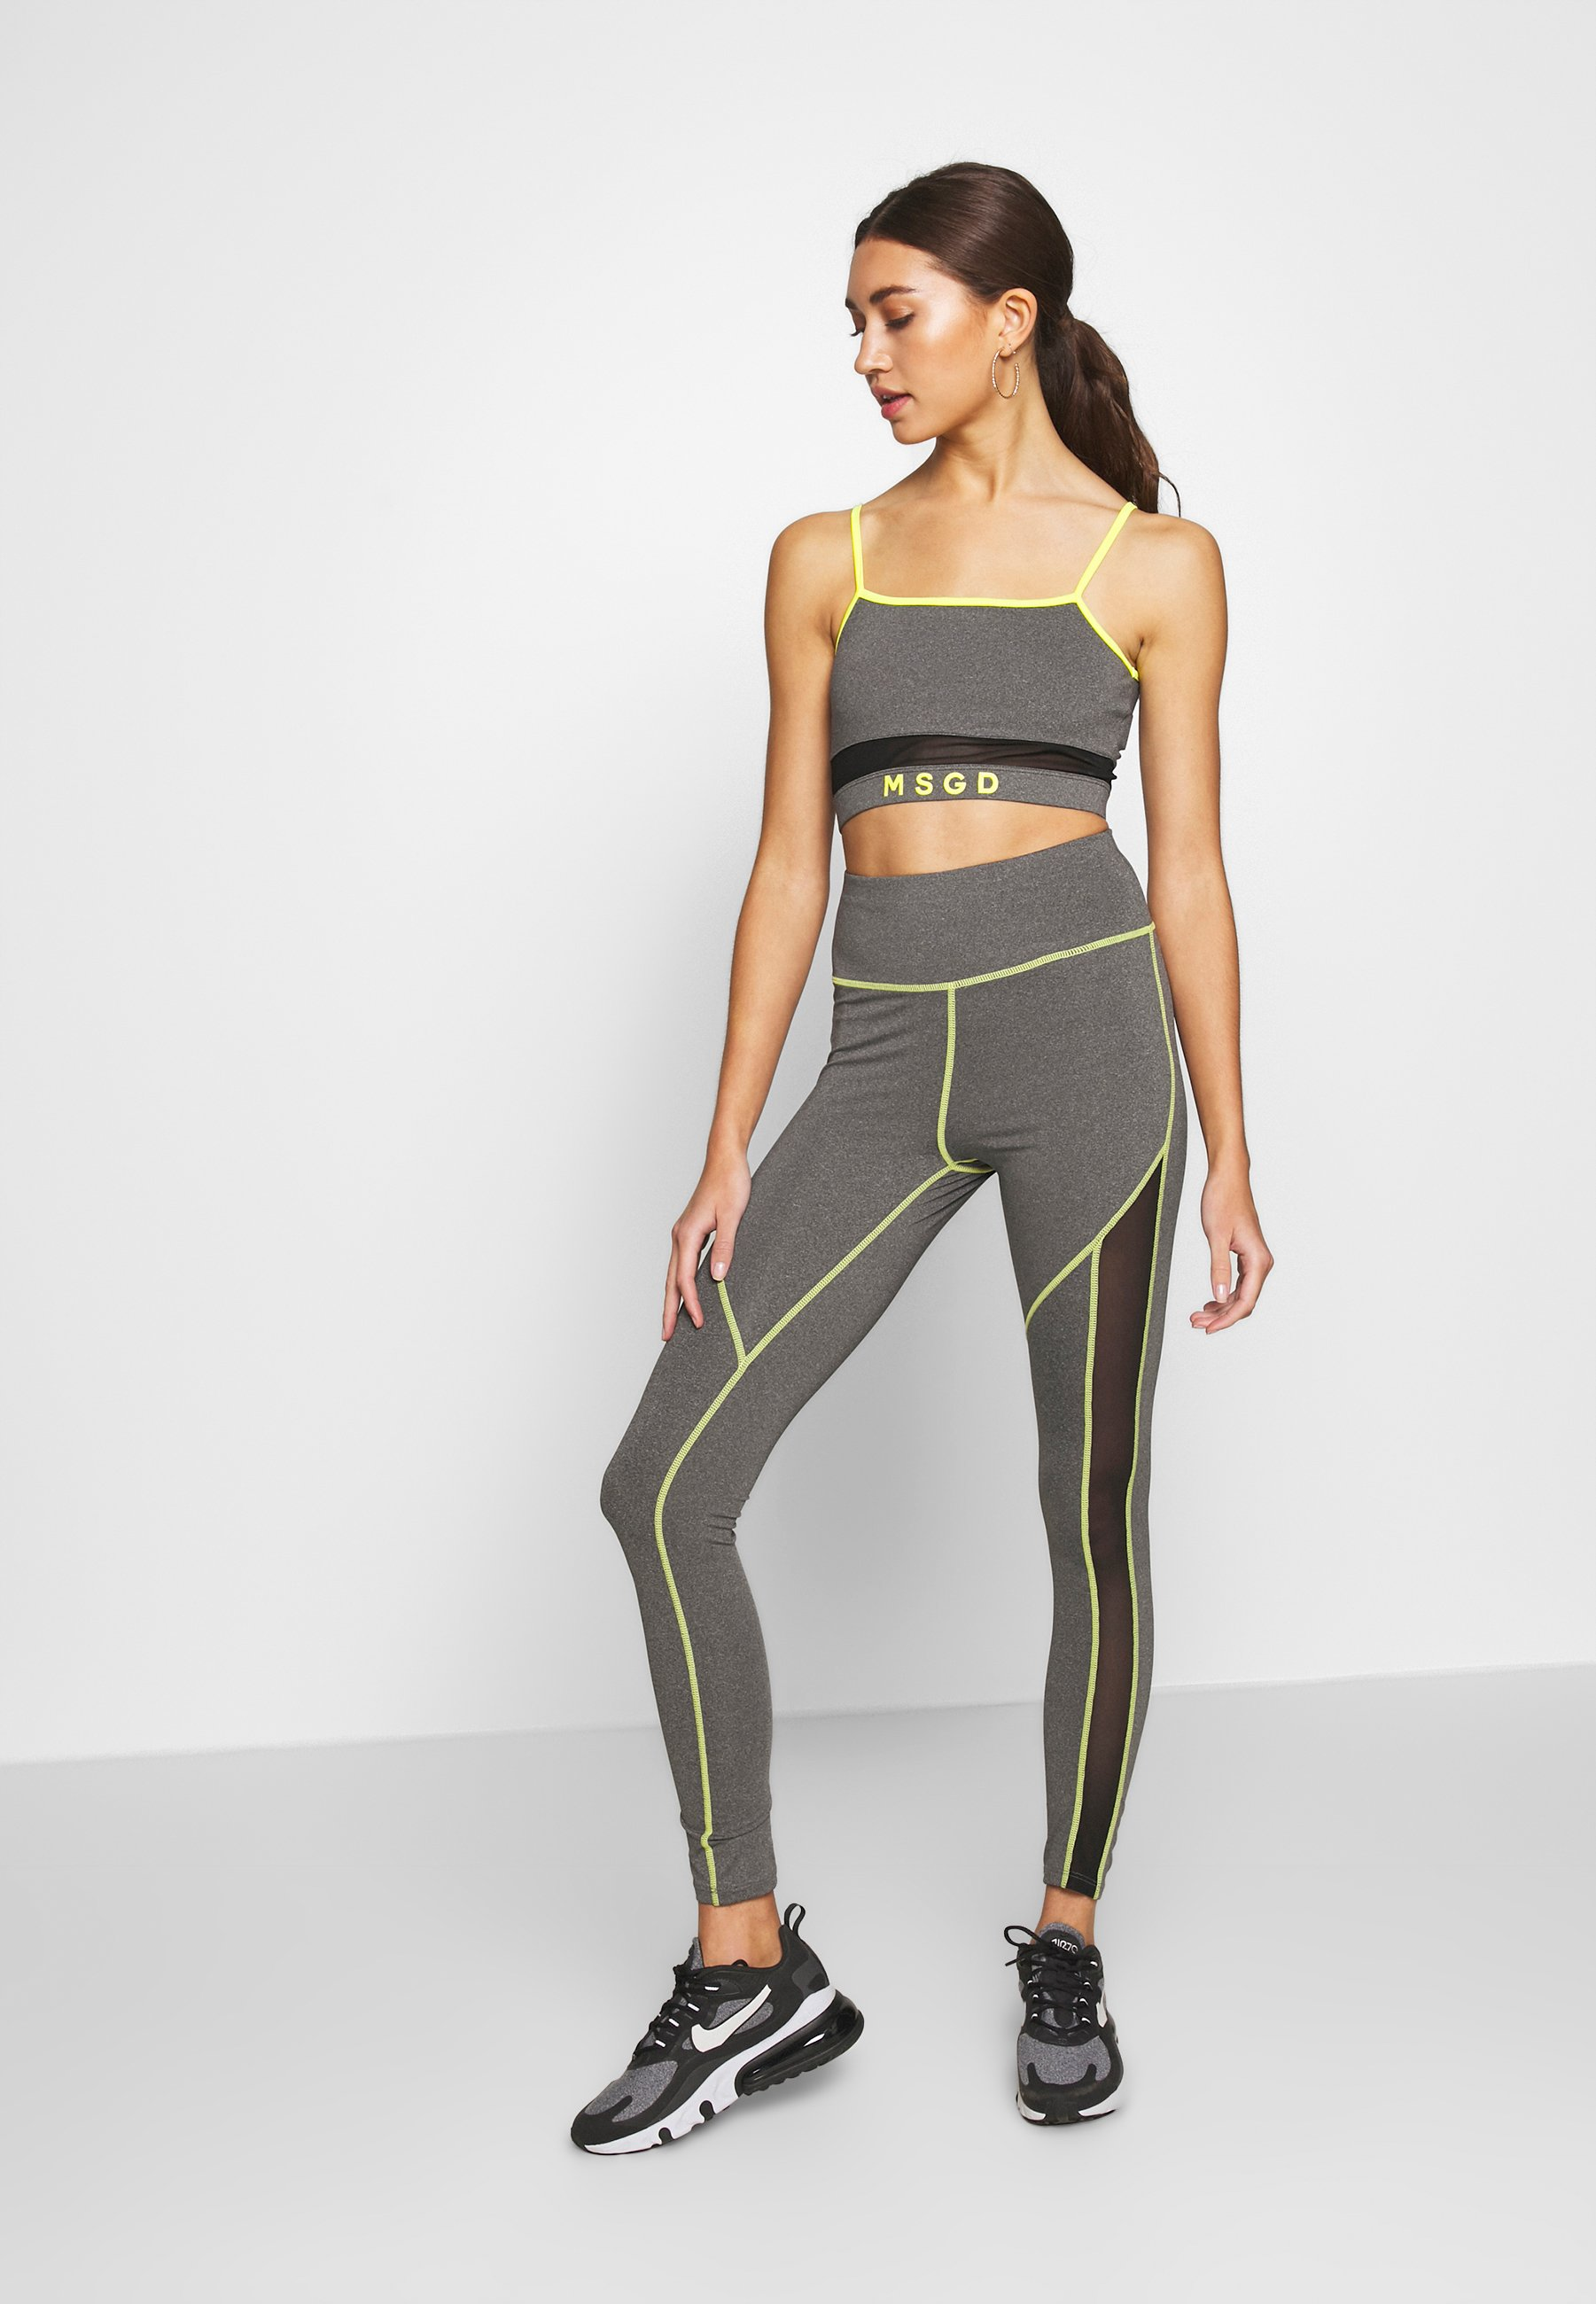 Missguided Tracksuit bottoms - grey